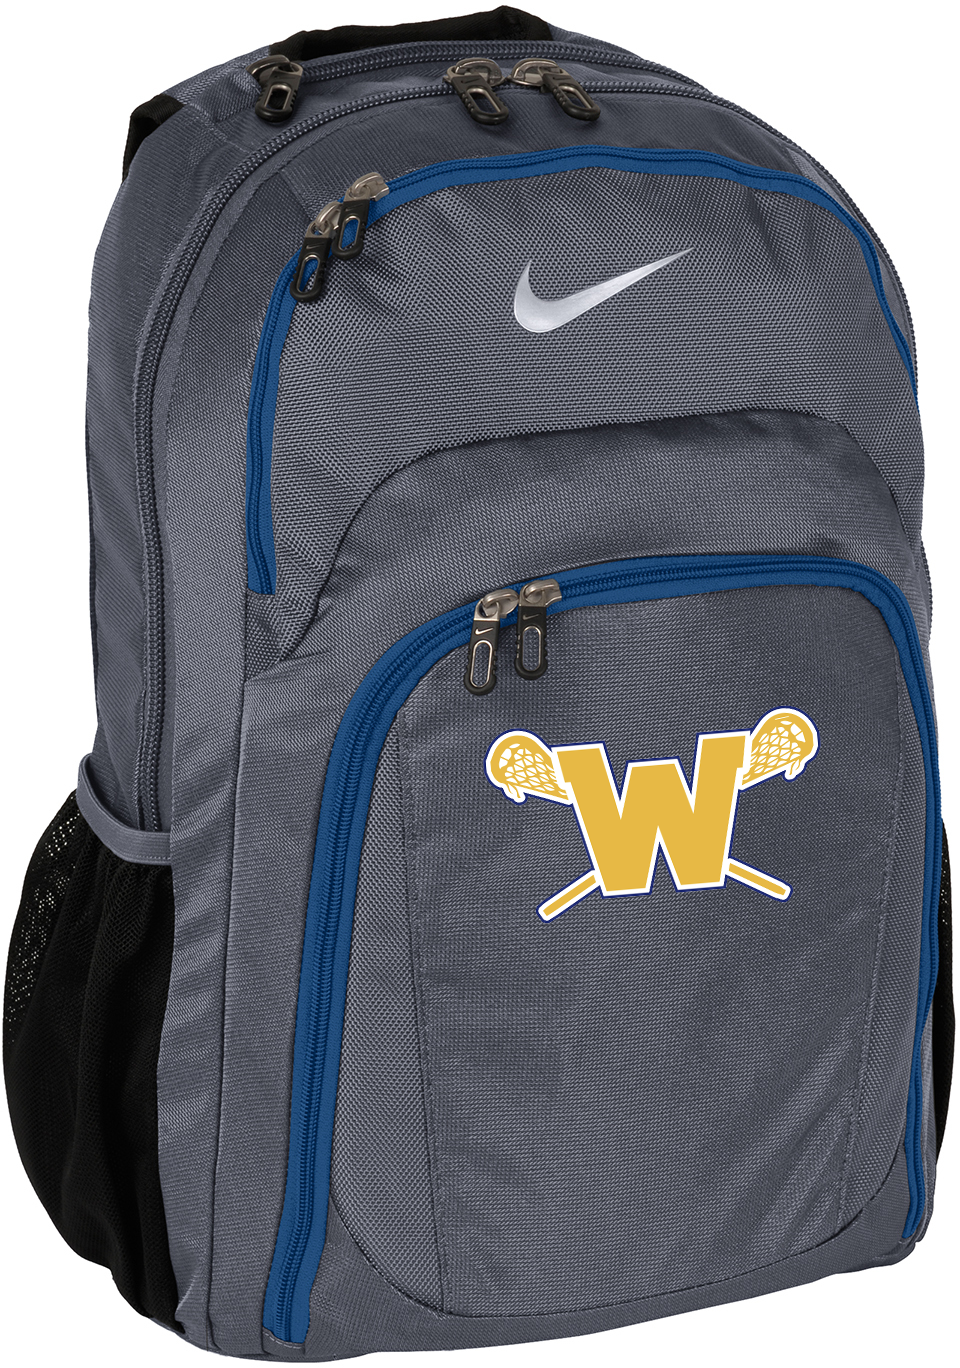 Webster Lacrosse Grey/Blue  Nike Backpack